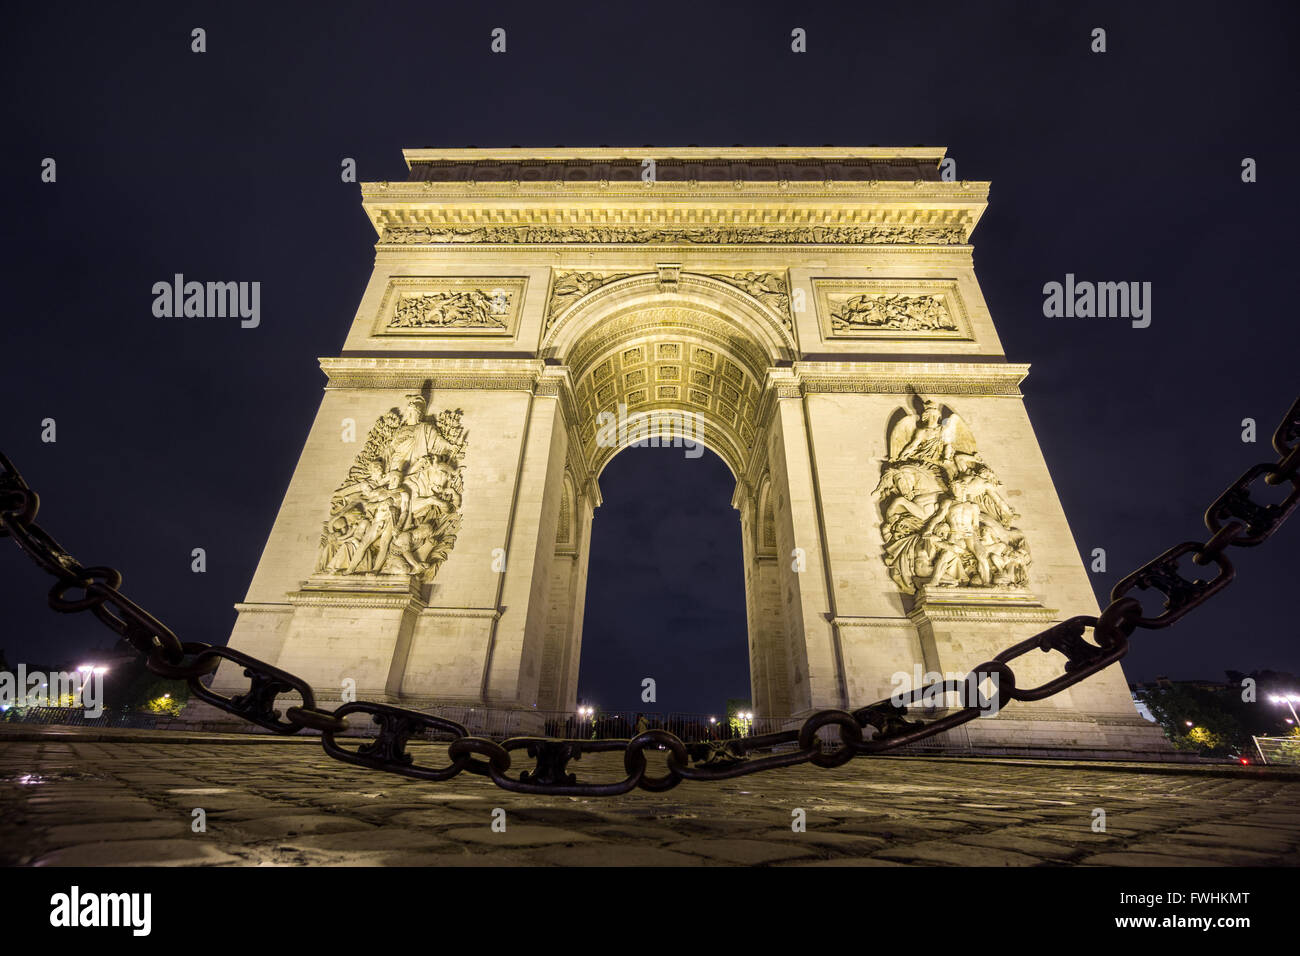 Arc de Triomphe and chain at night - Stock Image